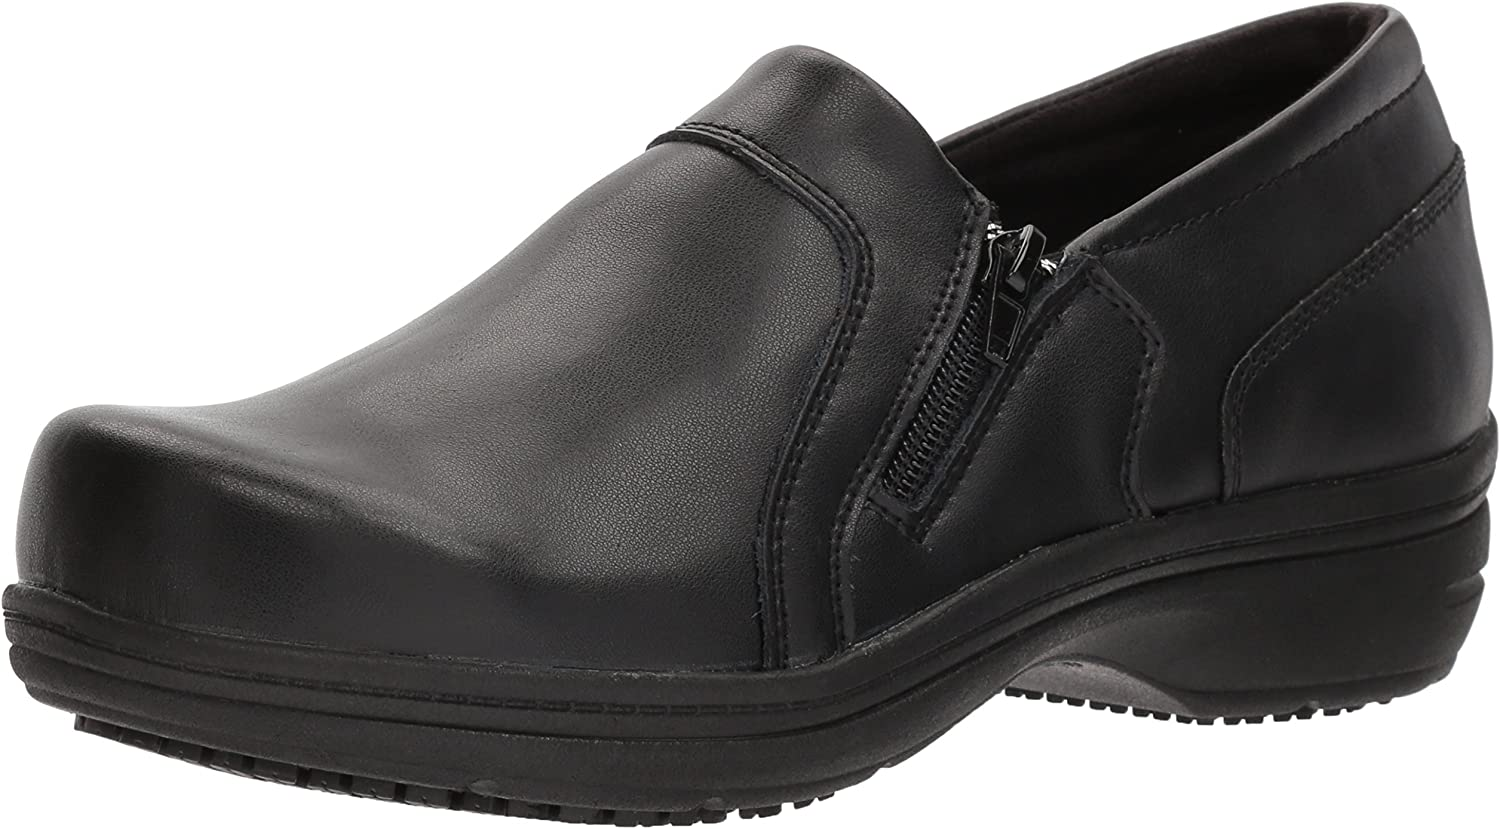 Easy Works Women's Bentley Health Care Professional shoes